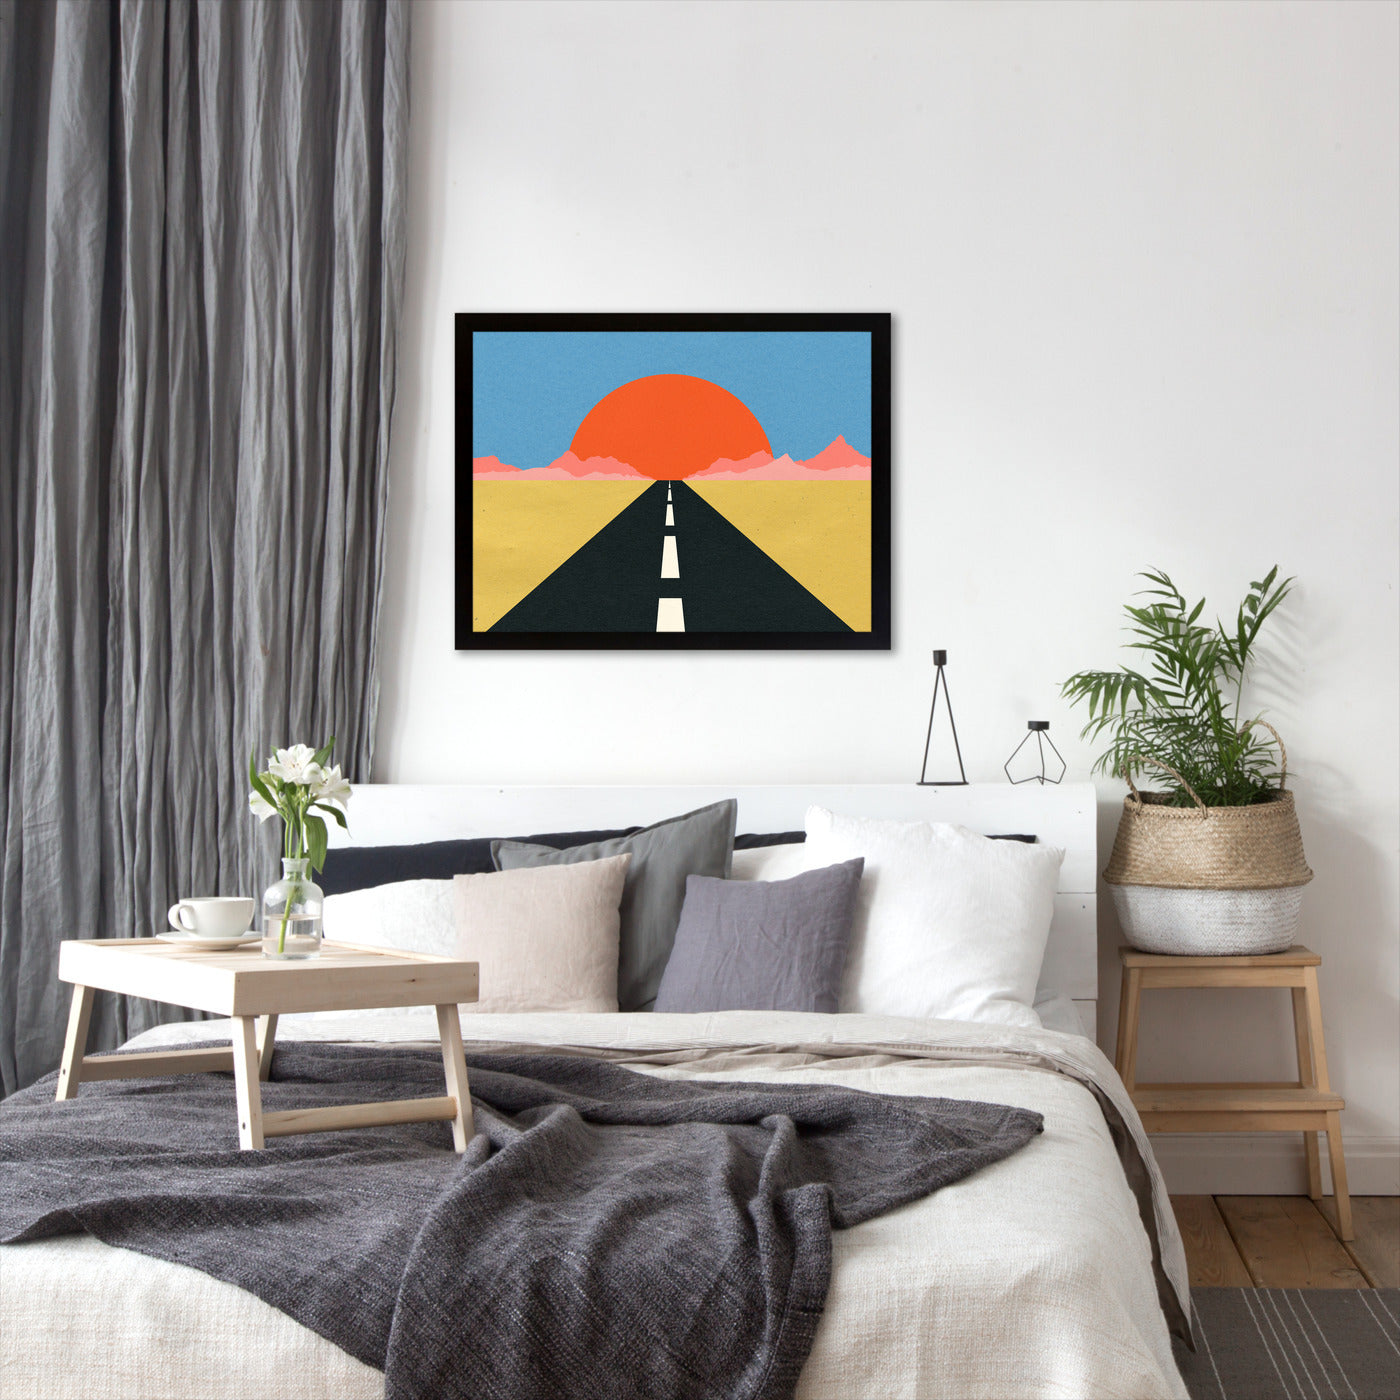 Road To Sun by Rosi Feist - Black Framed Print - Wall Art - Americanflat